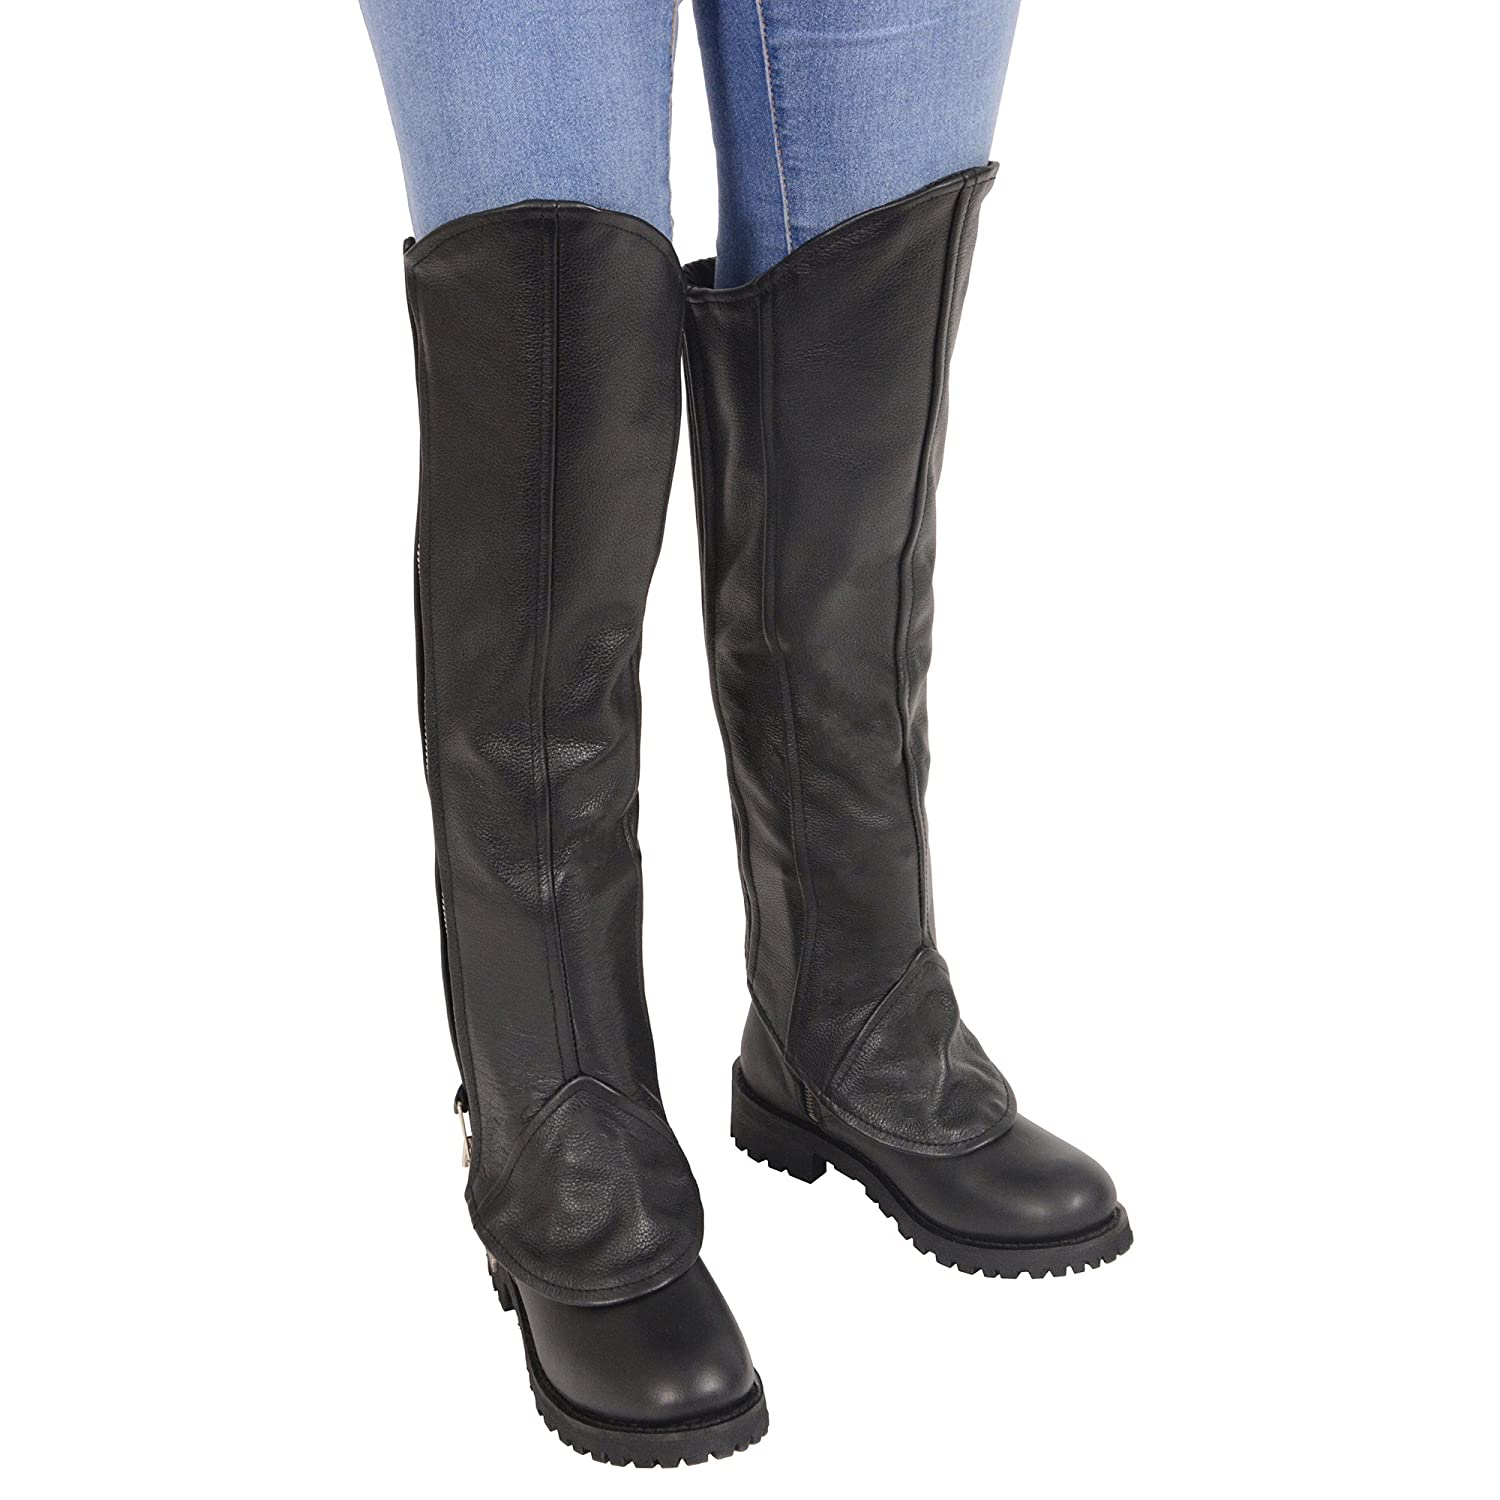 Milwaukee Leather Womens Knee High Half Chap with Zipper Entry 1 Pack Black, Large//X-Large